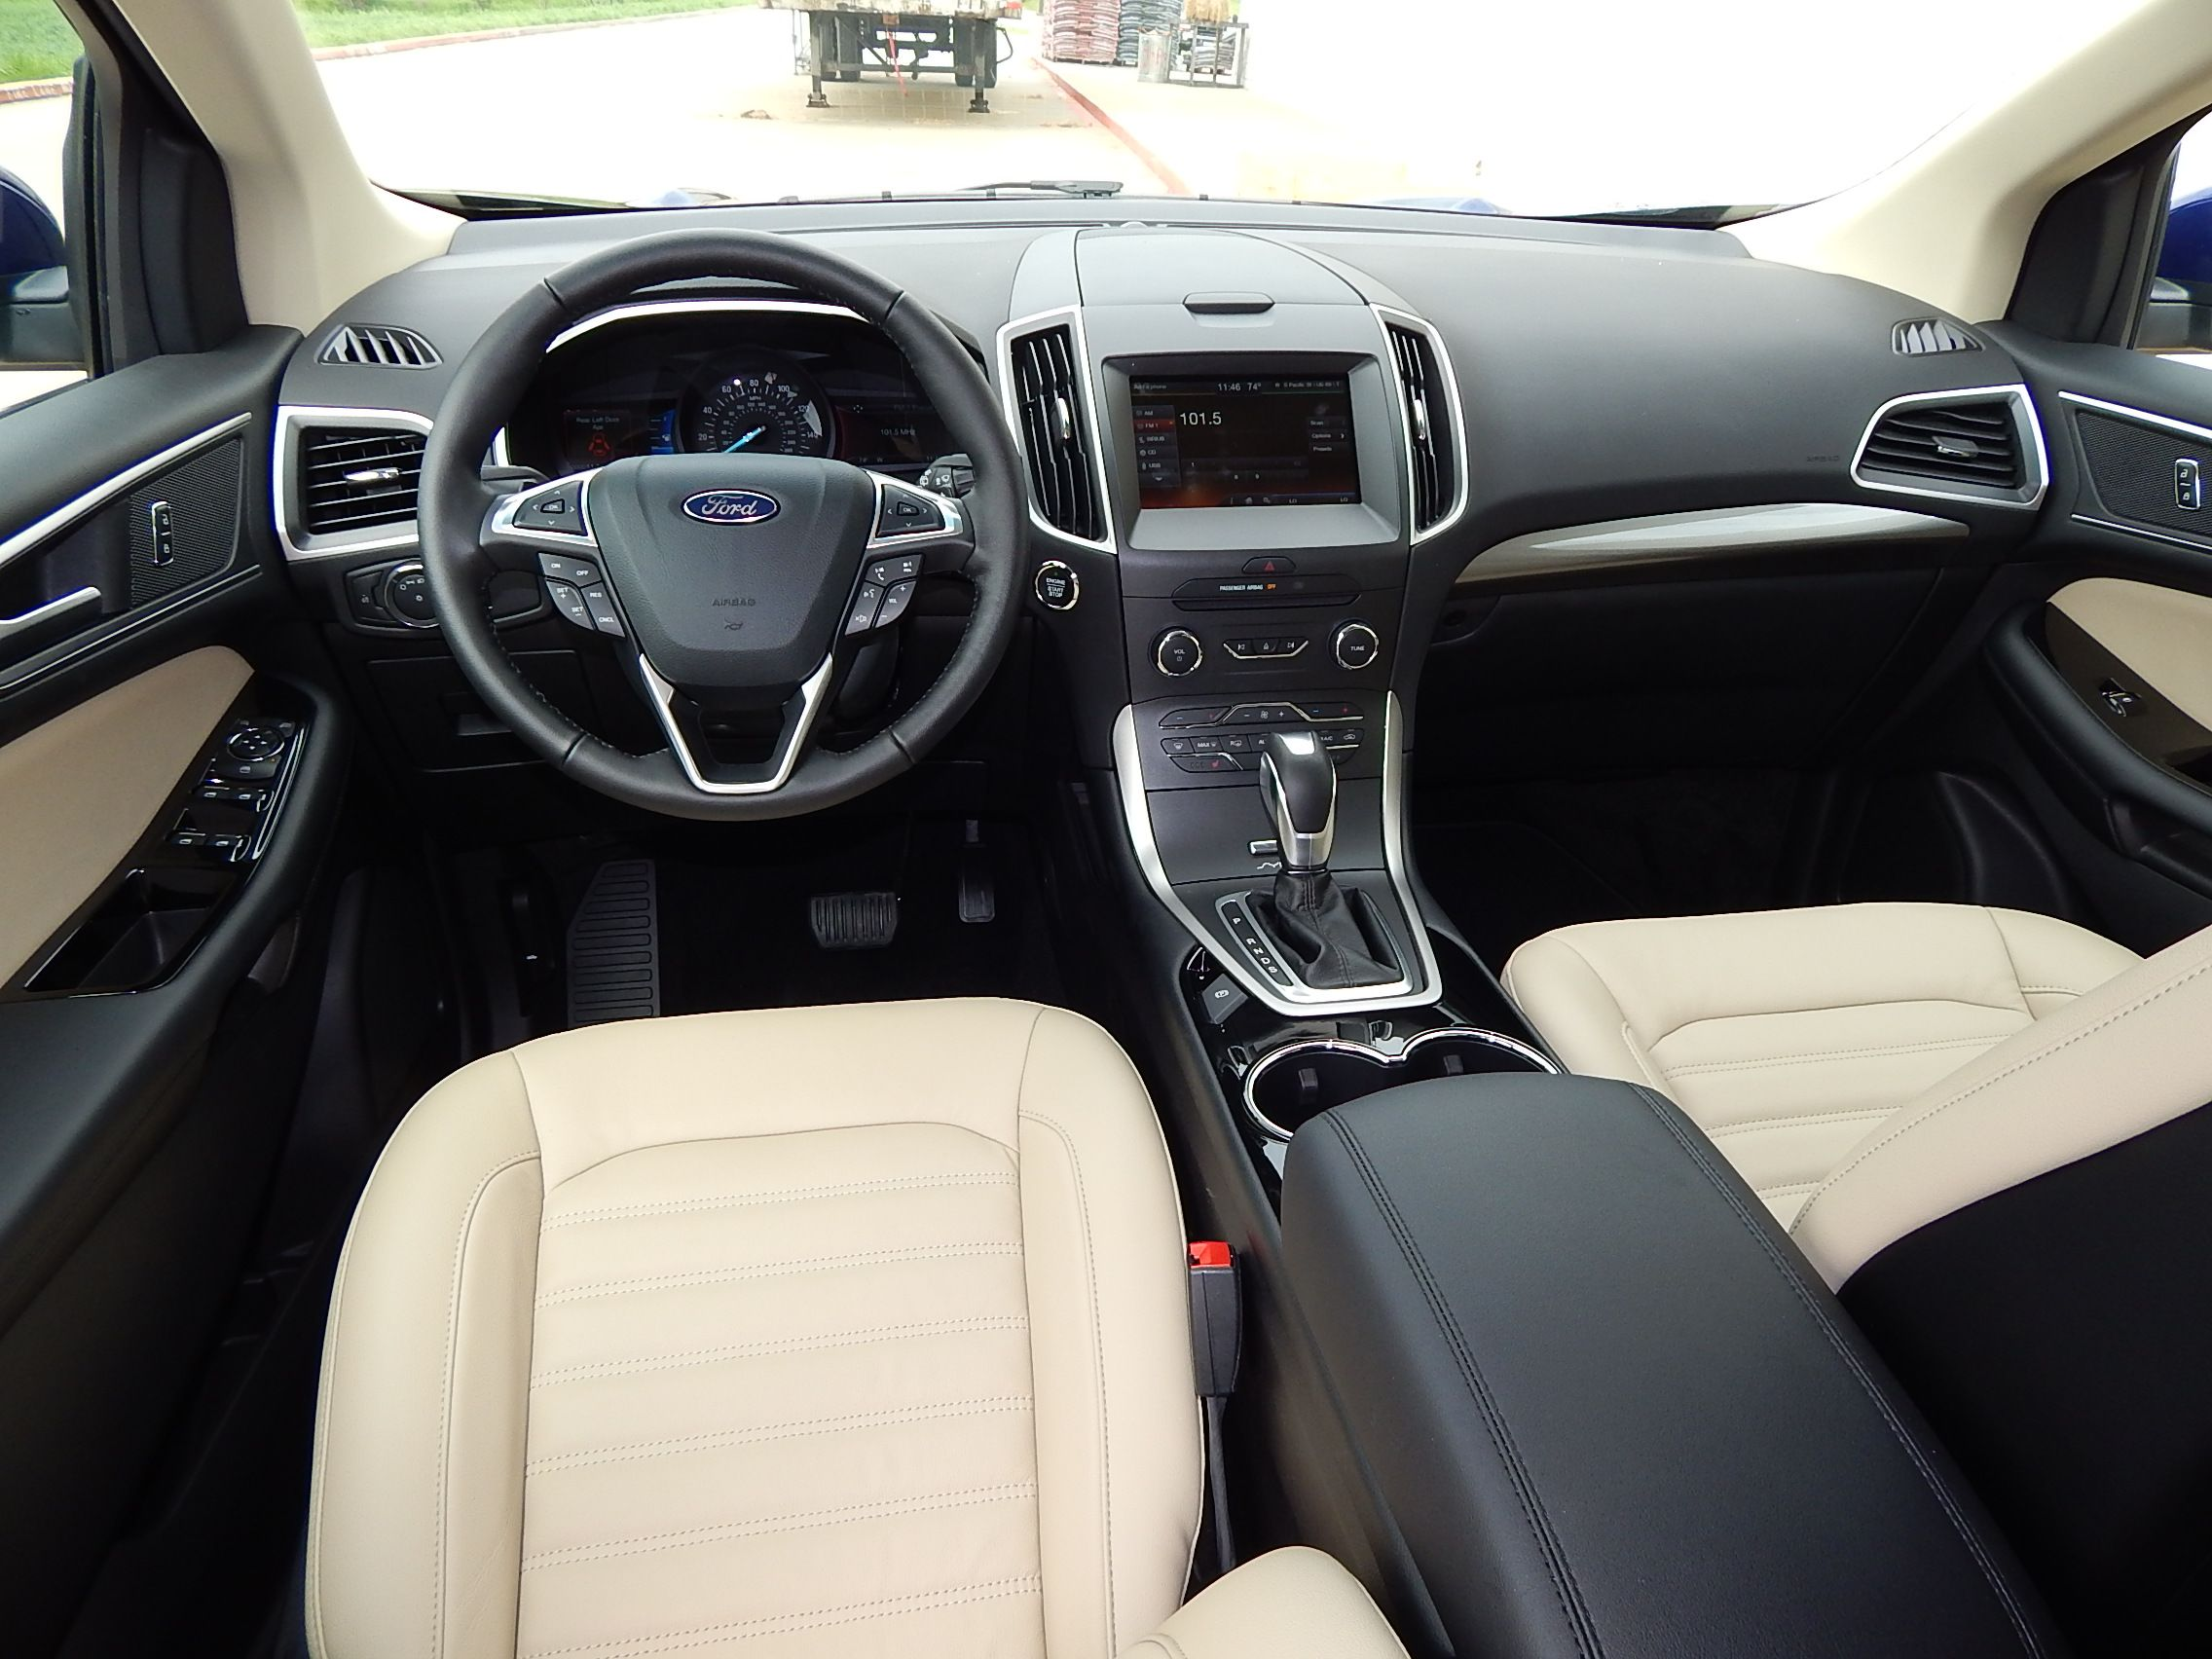 Ford Edge Interior With Dune Leather Seats